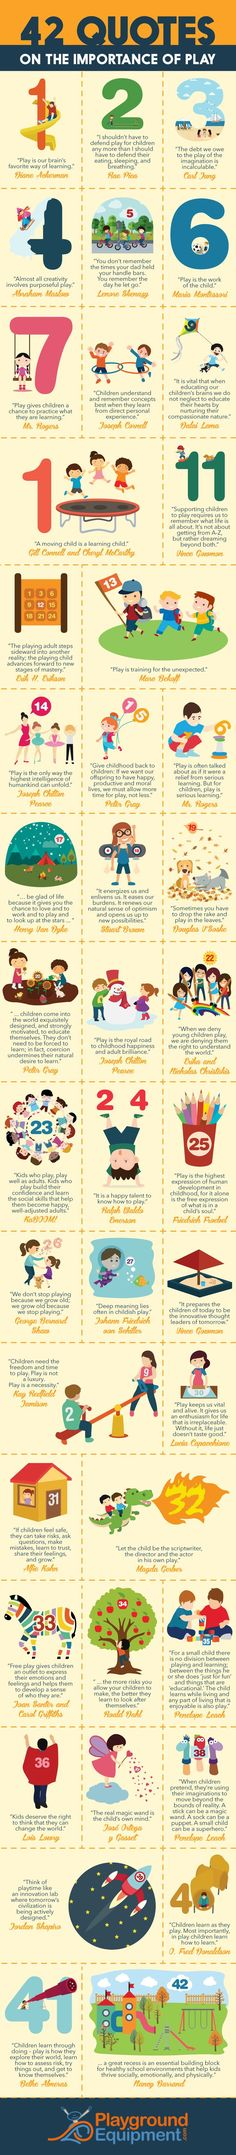 42 Quotes on the Importance of Play #Infographic #Education #Parenting